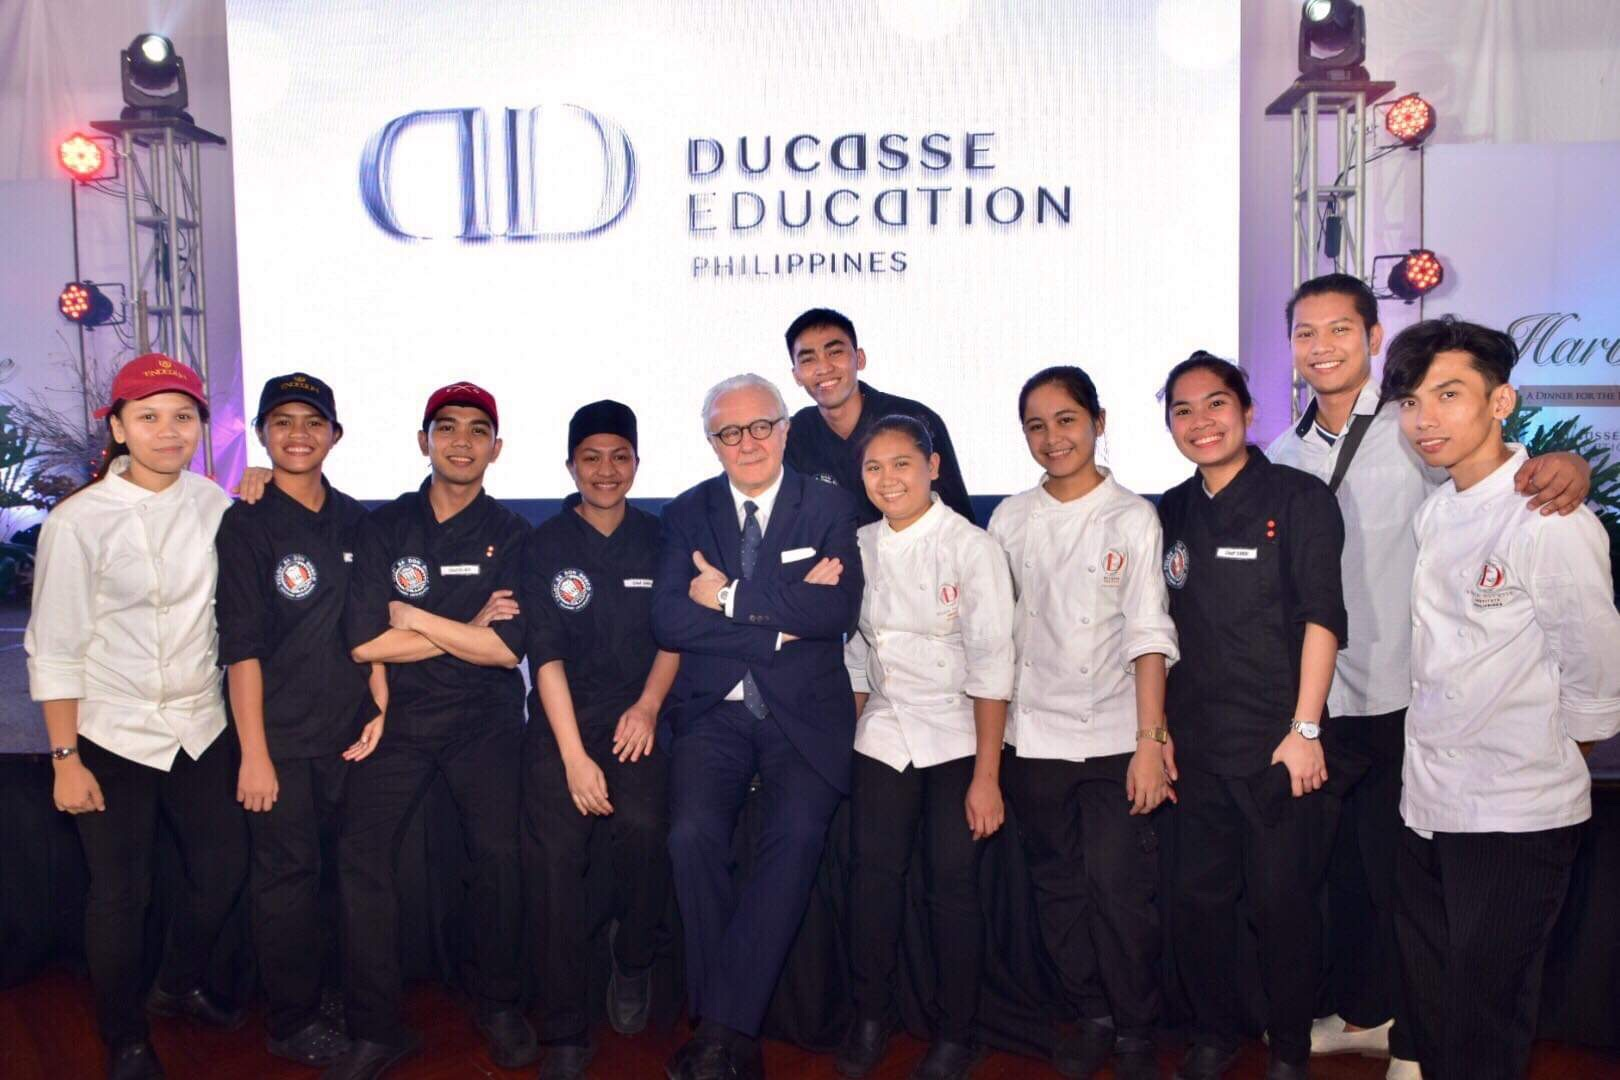 Chef Alain Ducasse with Tuloy and Youth with a Future Graduates